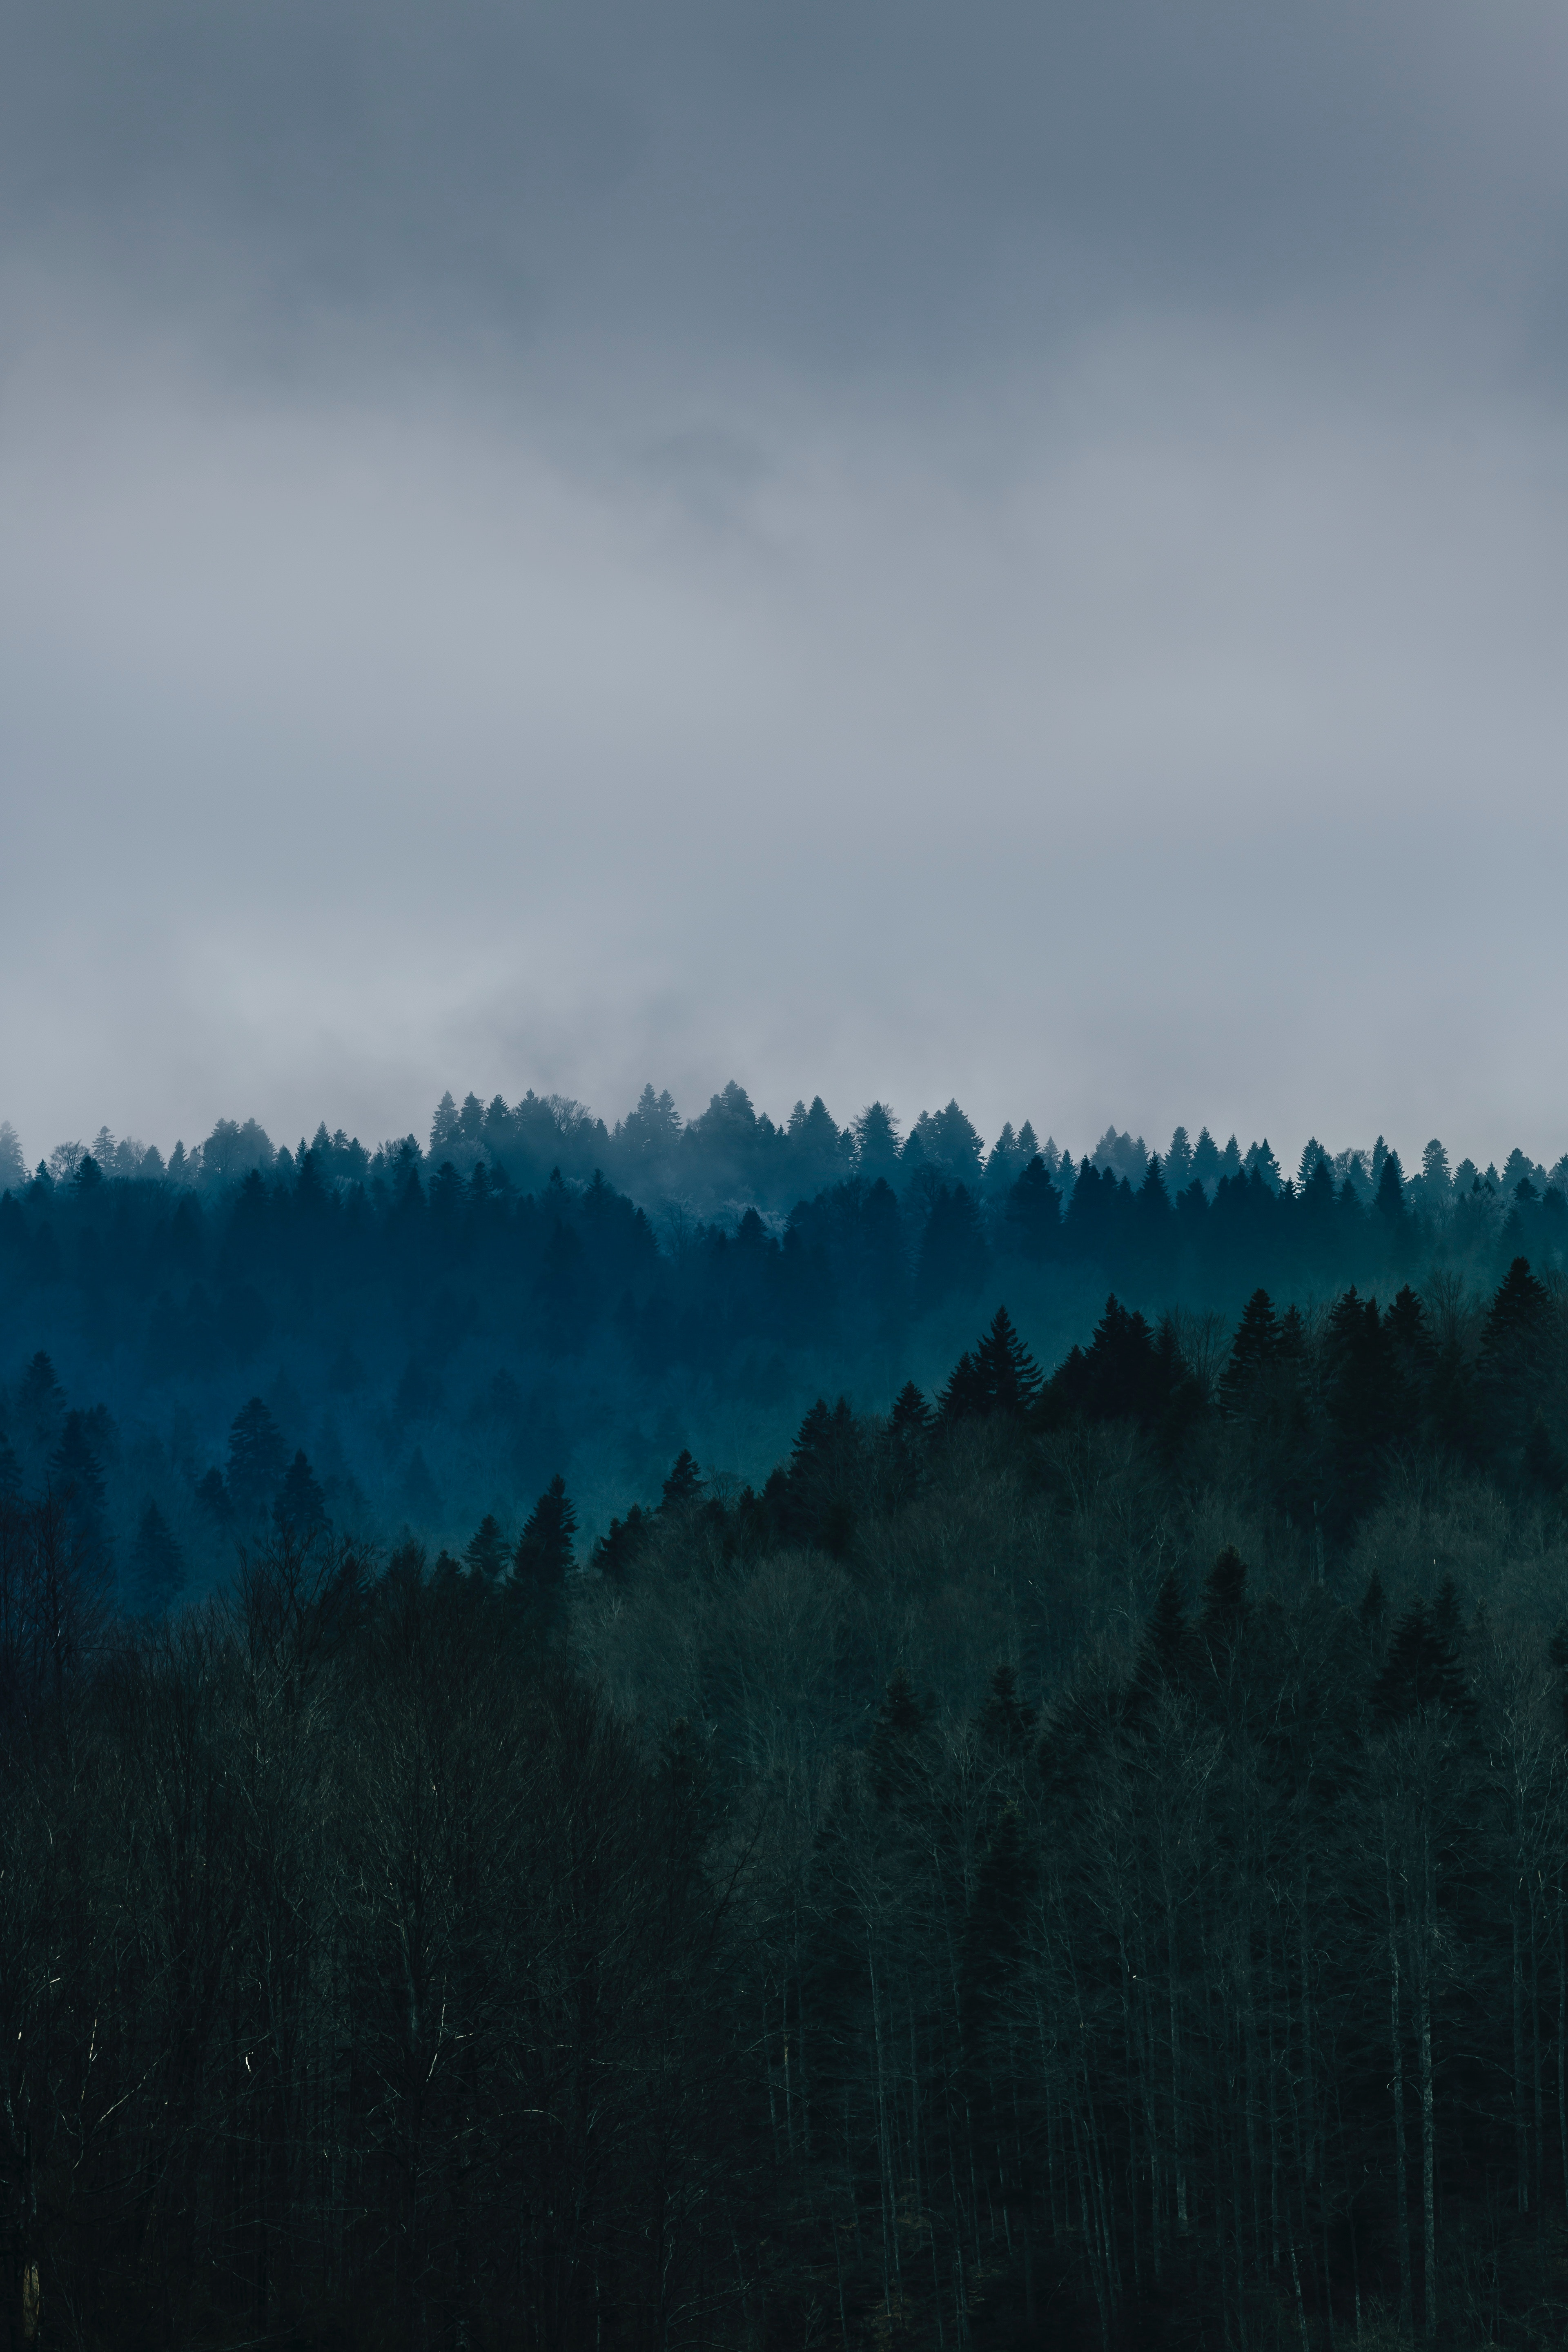 64864 download wallpaper Trees, Nature, Sky, View From Above, Forest, Fog screensavers and pictures for free